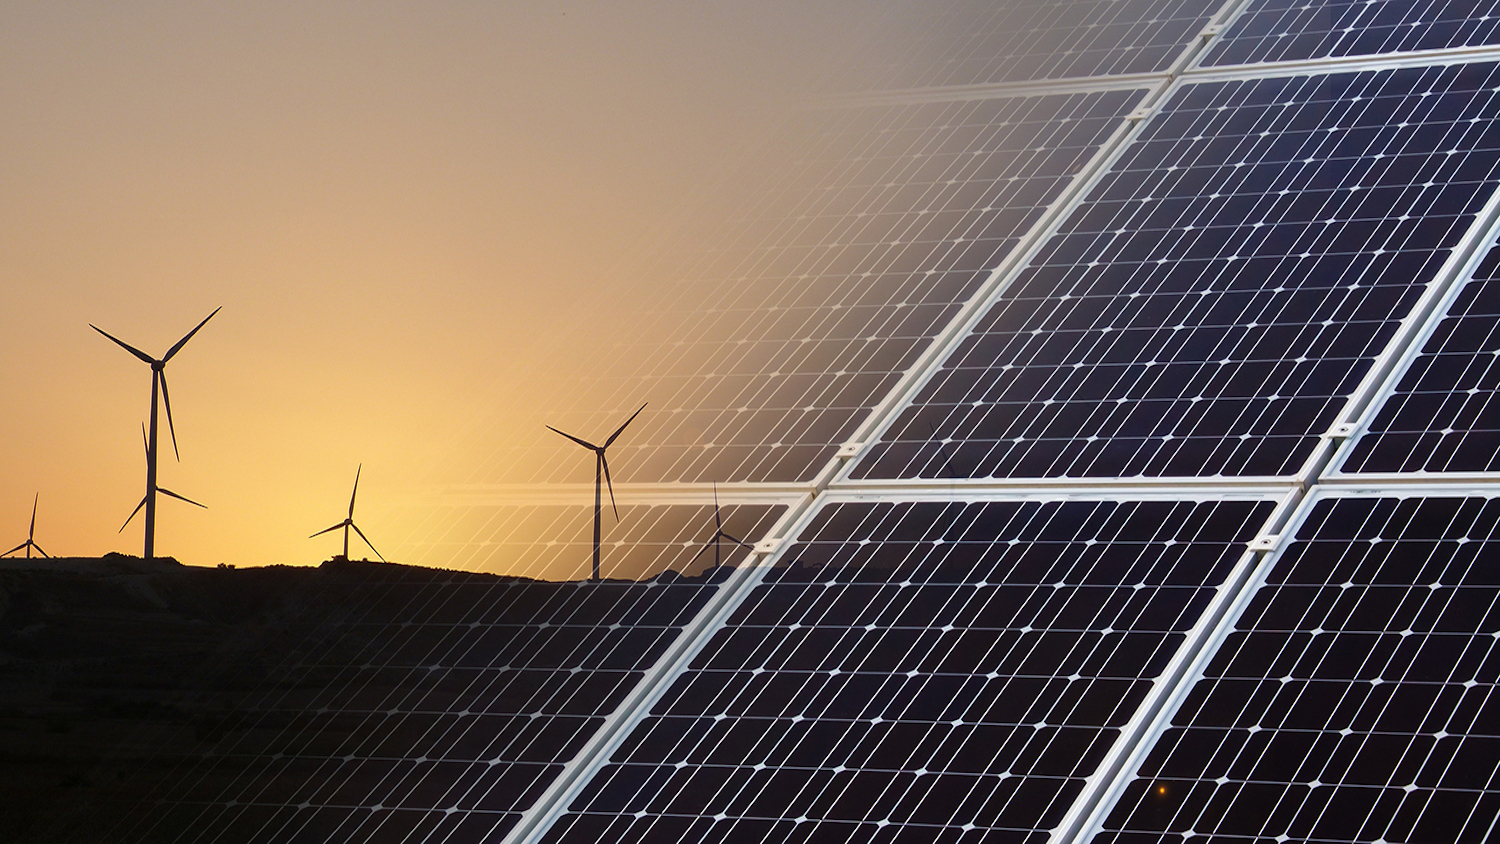 Renewable Energy - NC State Now Offering Online Graduate Certificate in Renewable Energy Development - College of Natural Resources at NC State University